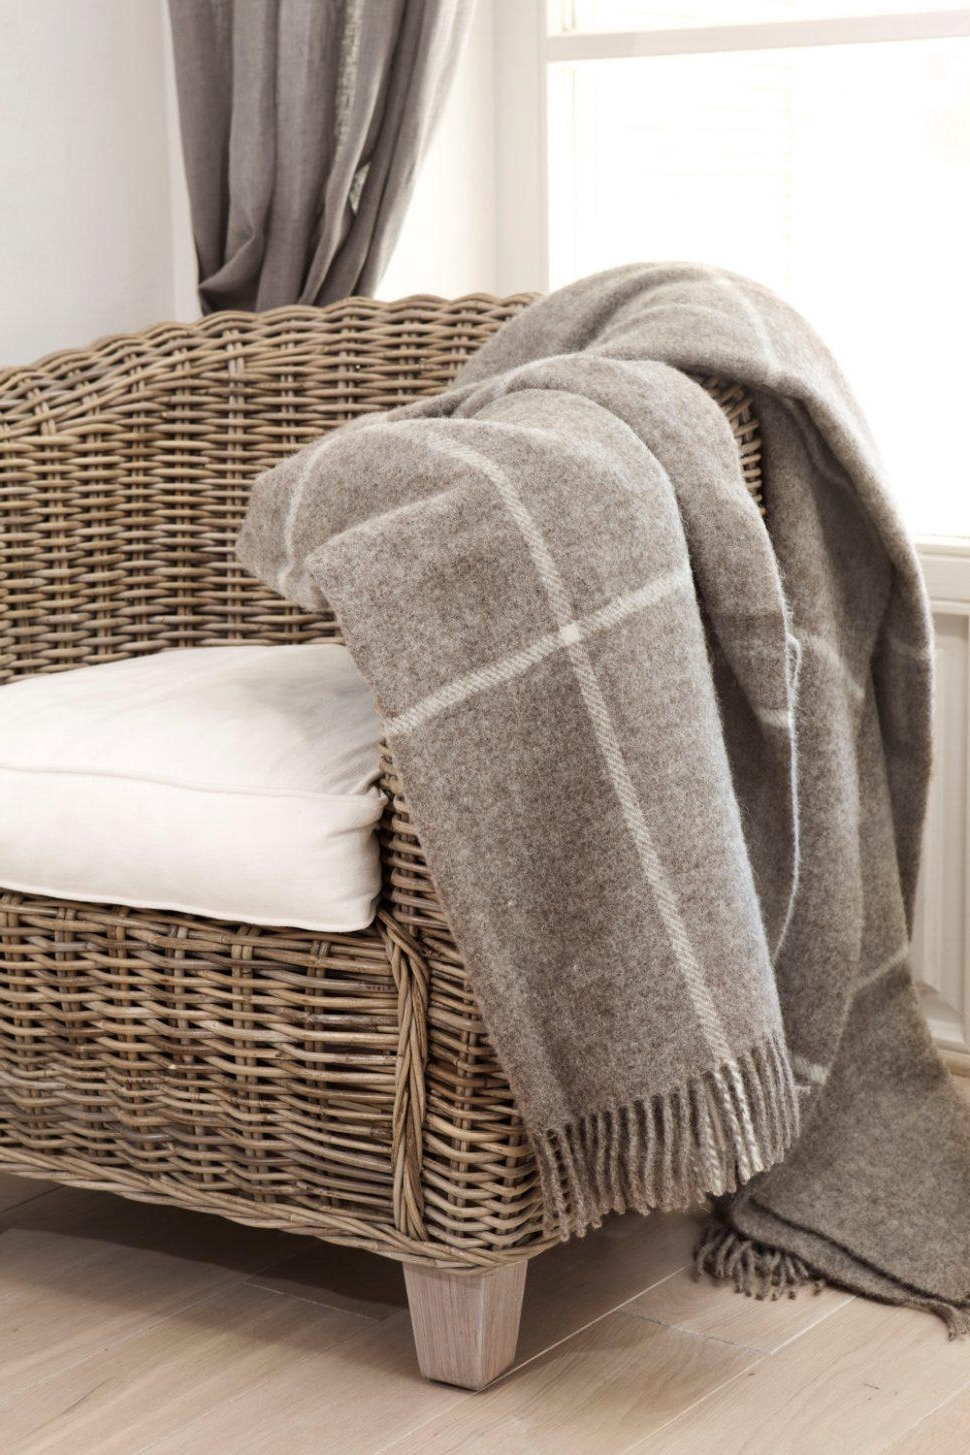 Throws For Sofas And Chairs With Well Liked Cotton Throws For Sofas Sophisticated Throw For Couch Farmhouse (View 8 of 20)